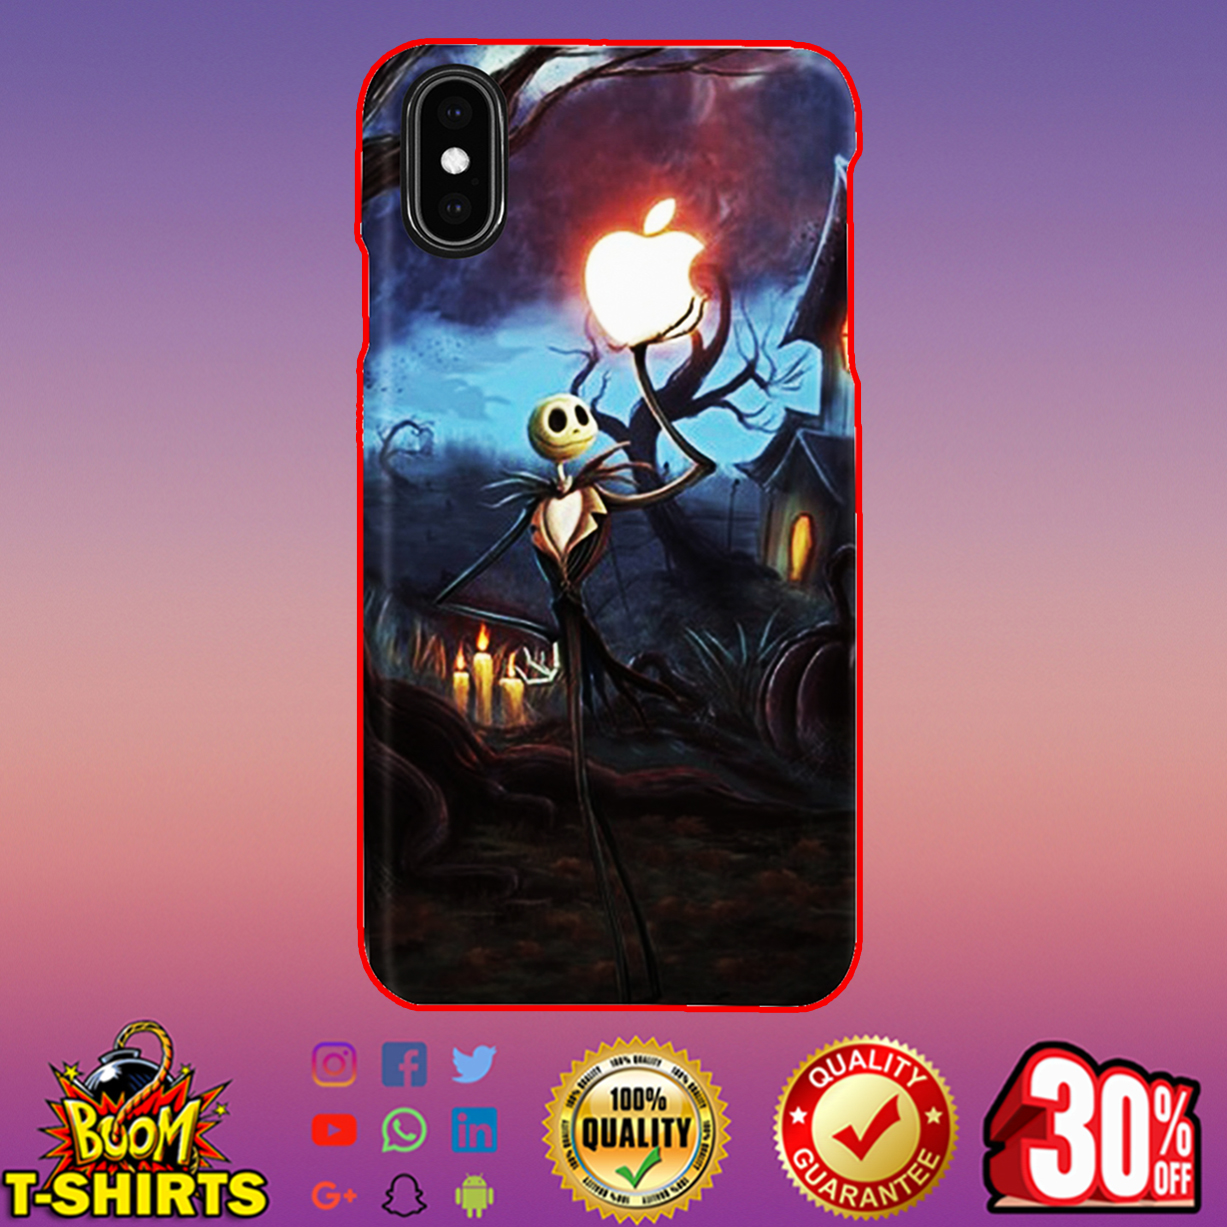 Jack Skellington holding Apple phone case - iphone XS Max case